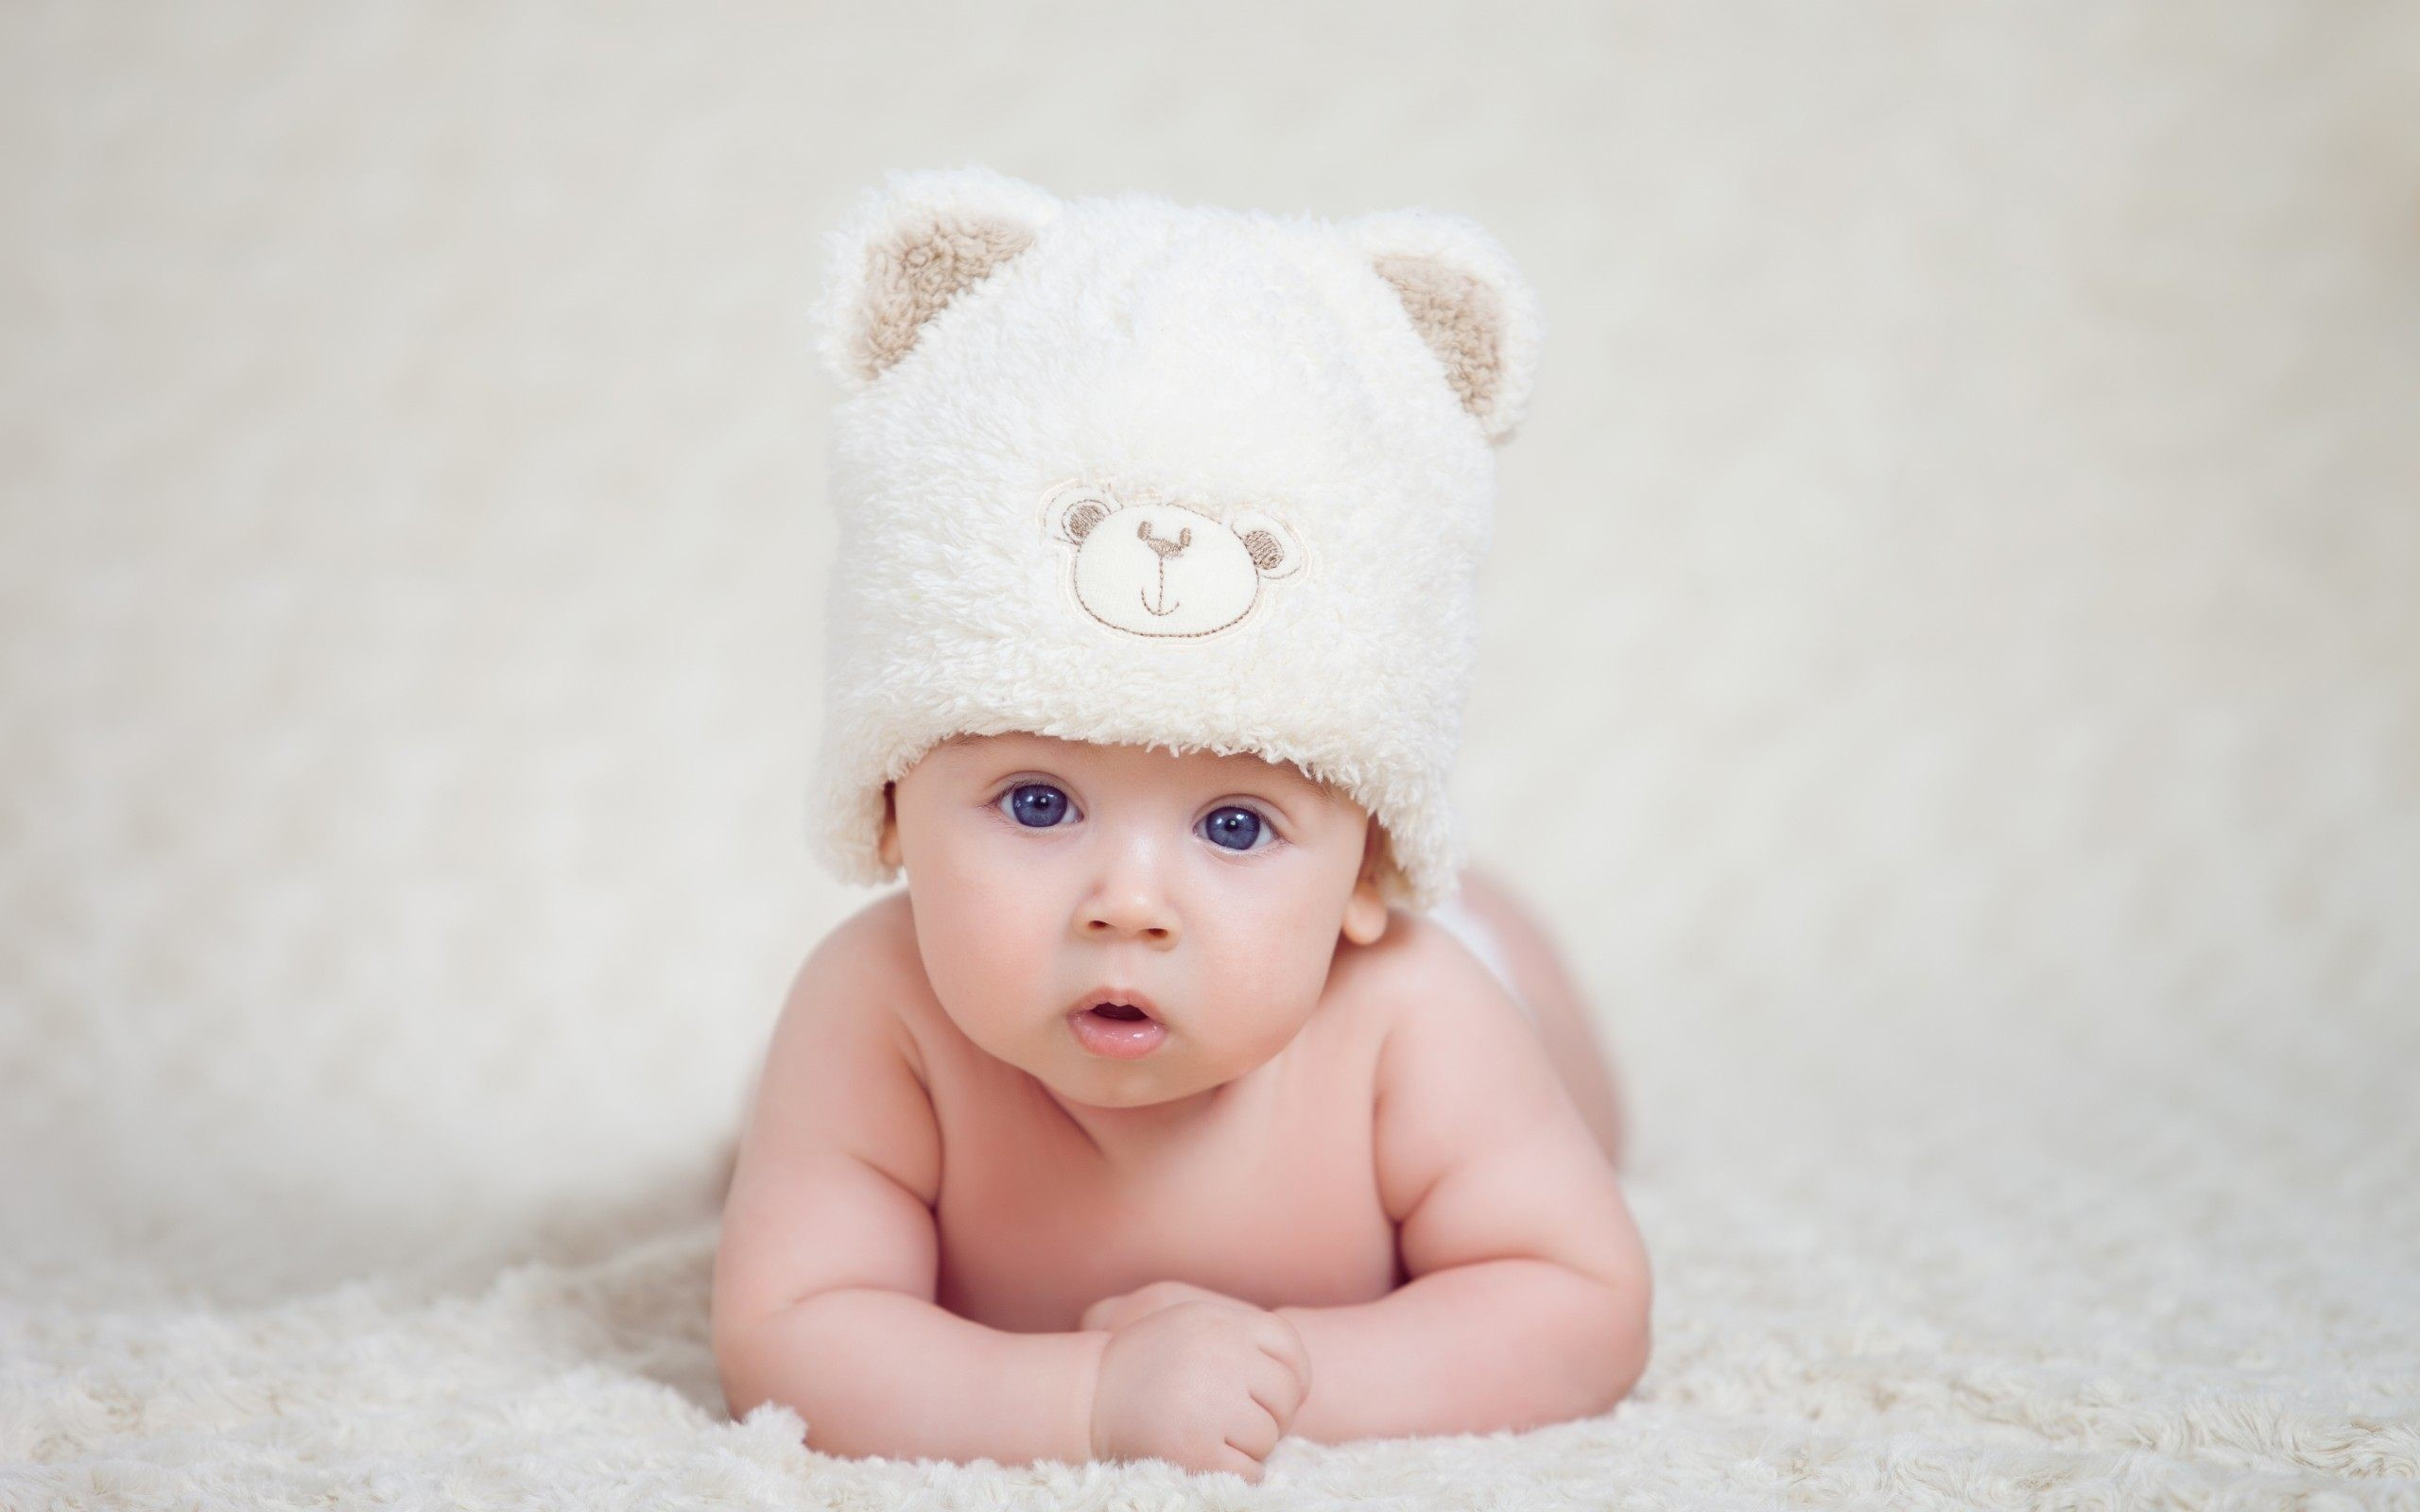 2560x1600 Baby Wallpaper High Quality